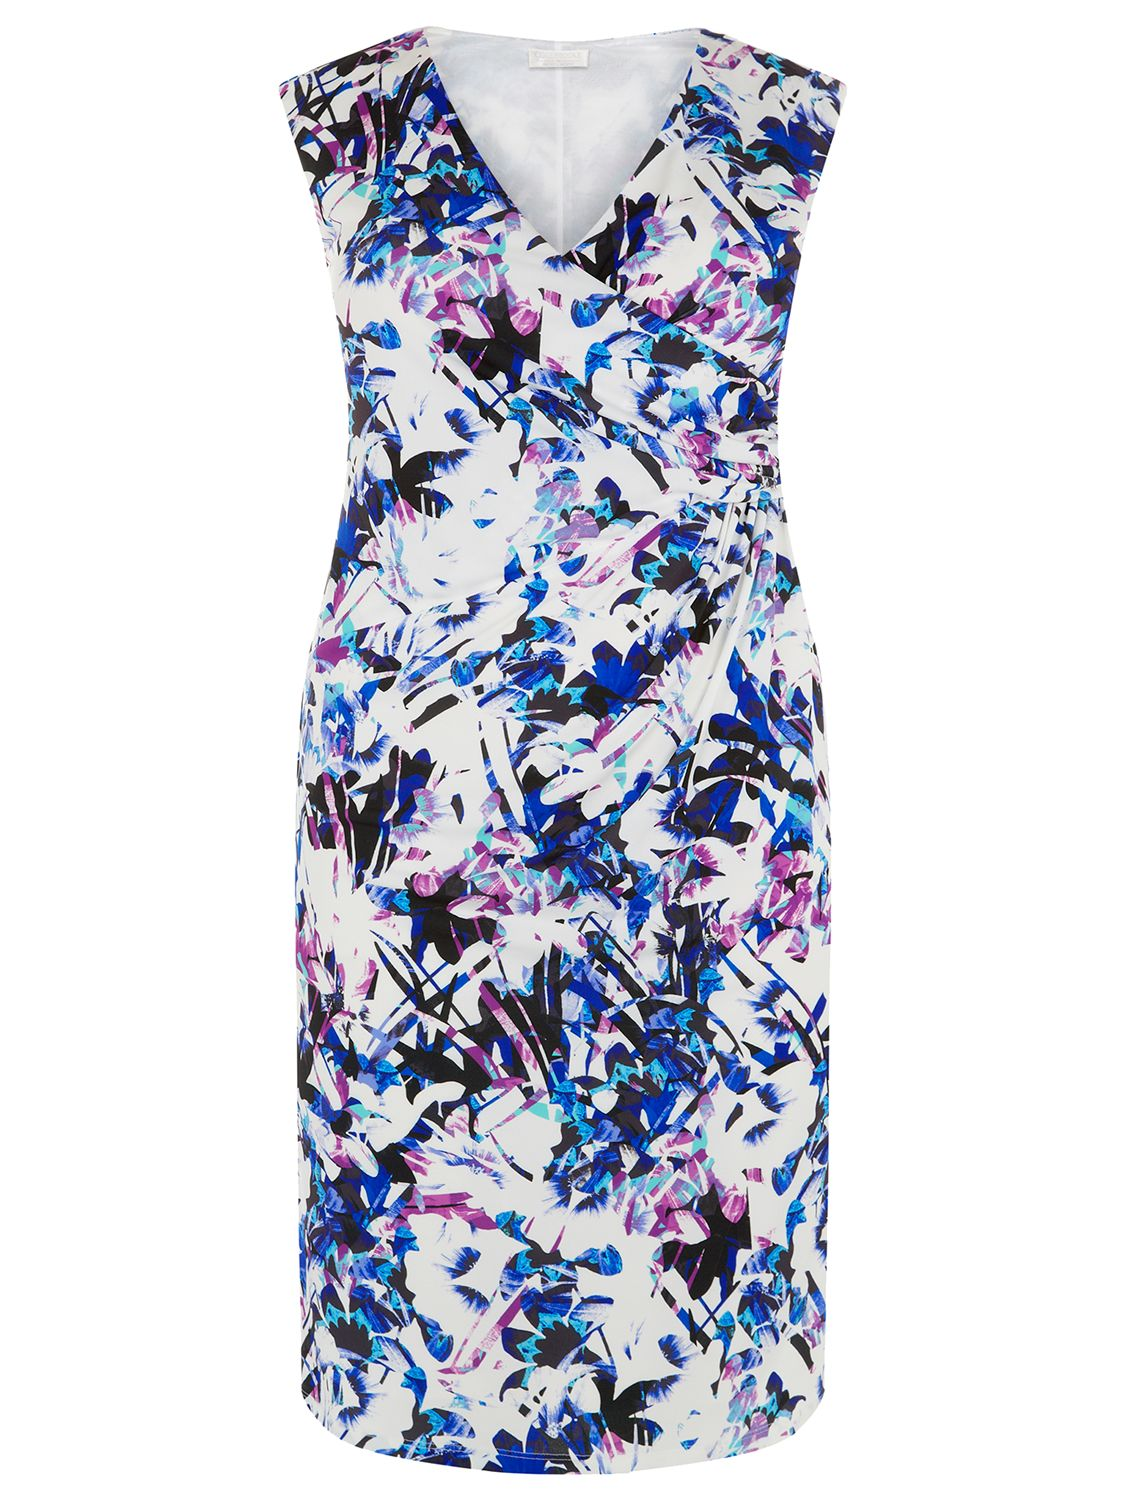 windsmoor lily print short dress multi white, windsmoor, lily, print, short, dress, multi, white, 18|12|20|22|24|16|14, women, plus size, womens dresses, special offers, womenswear offers, 20% off selected windsmoor, gifts, wedding, wedding clothing, female guests, 1887618